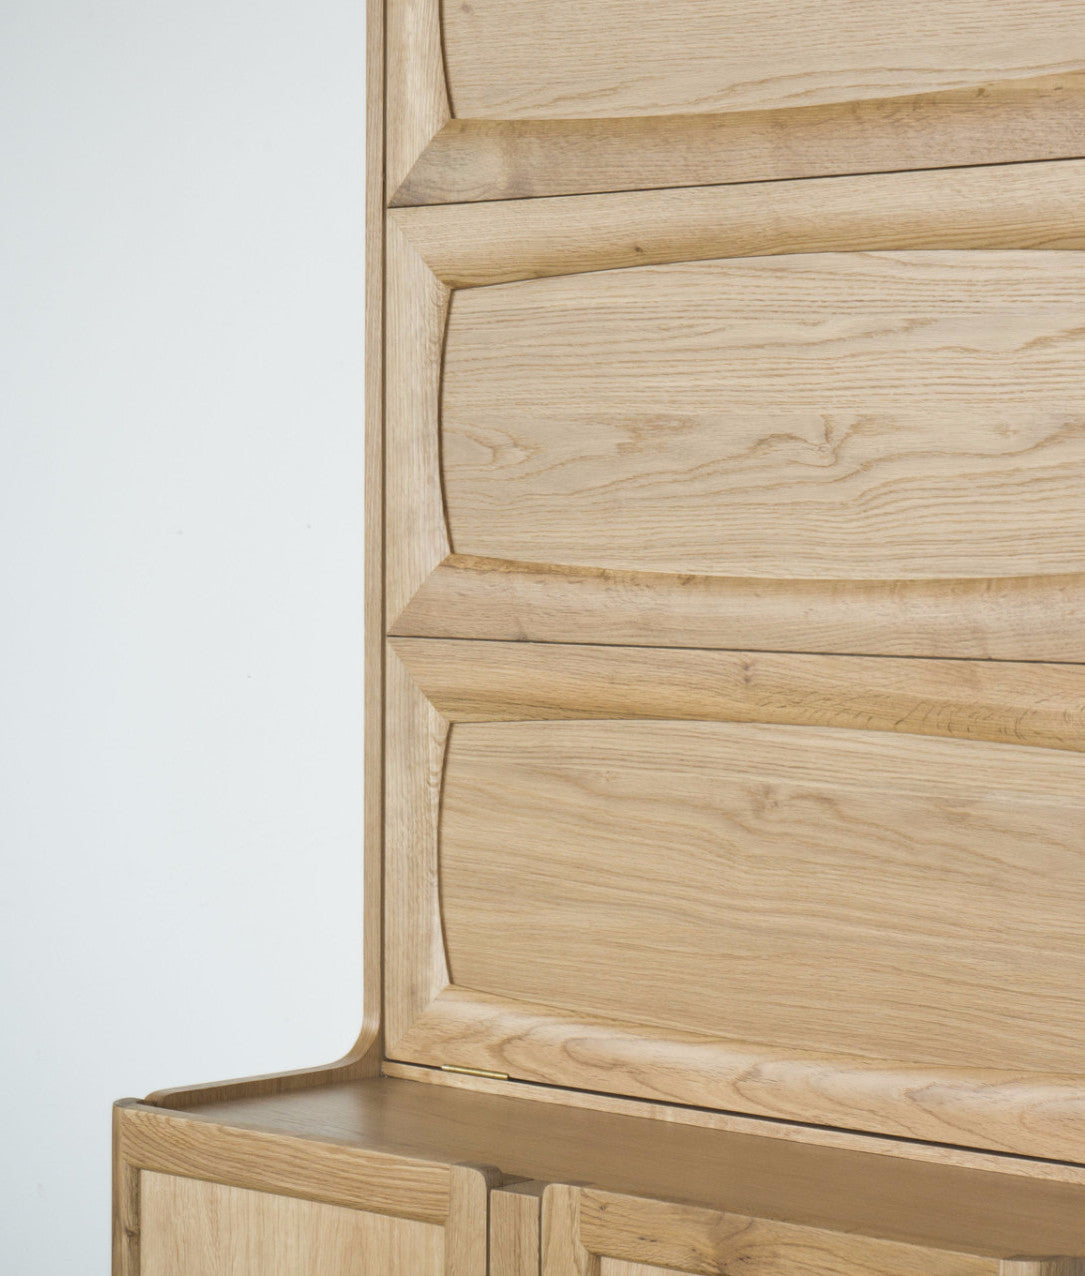 Ziinlife APO CUPBOARD CLOSE UP